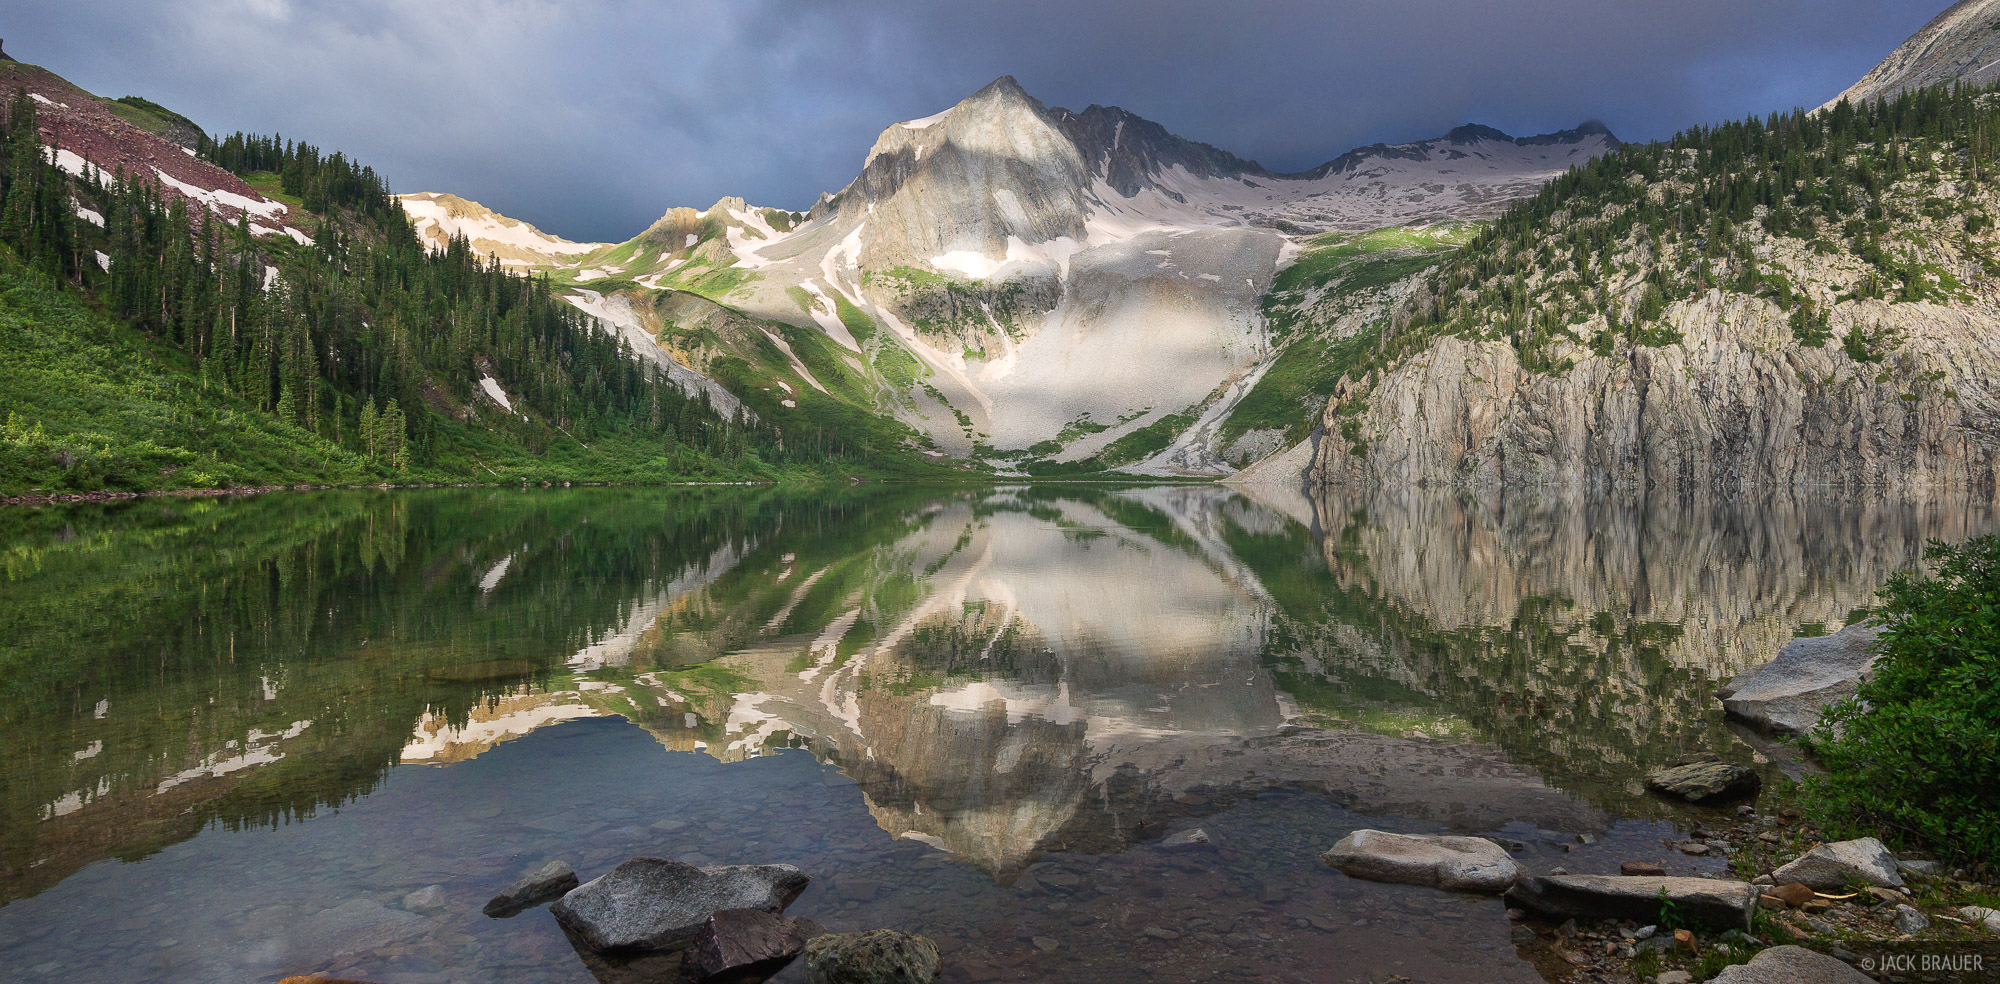 Early morning shadows play on Snowmass Peak, reflected in Snowmass Lake.